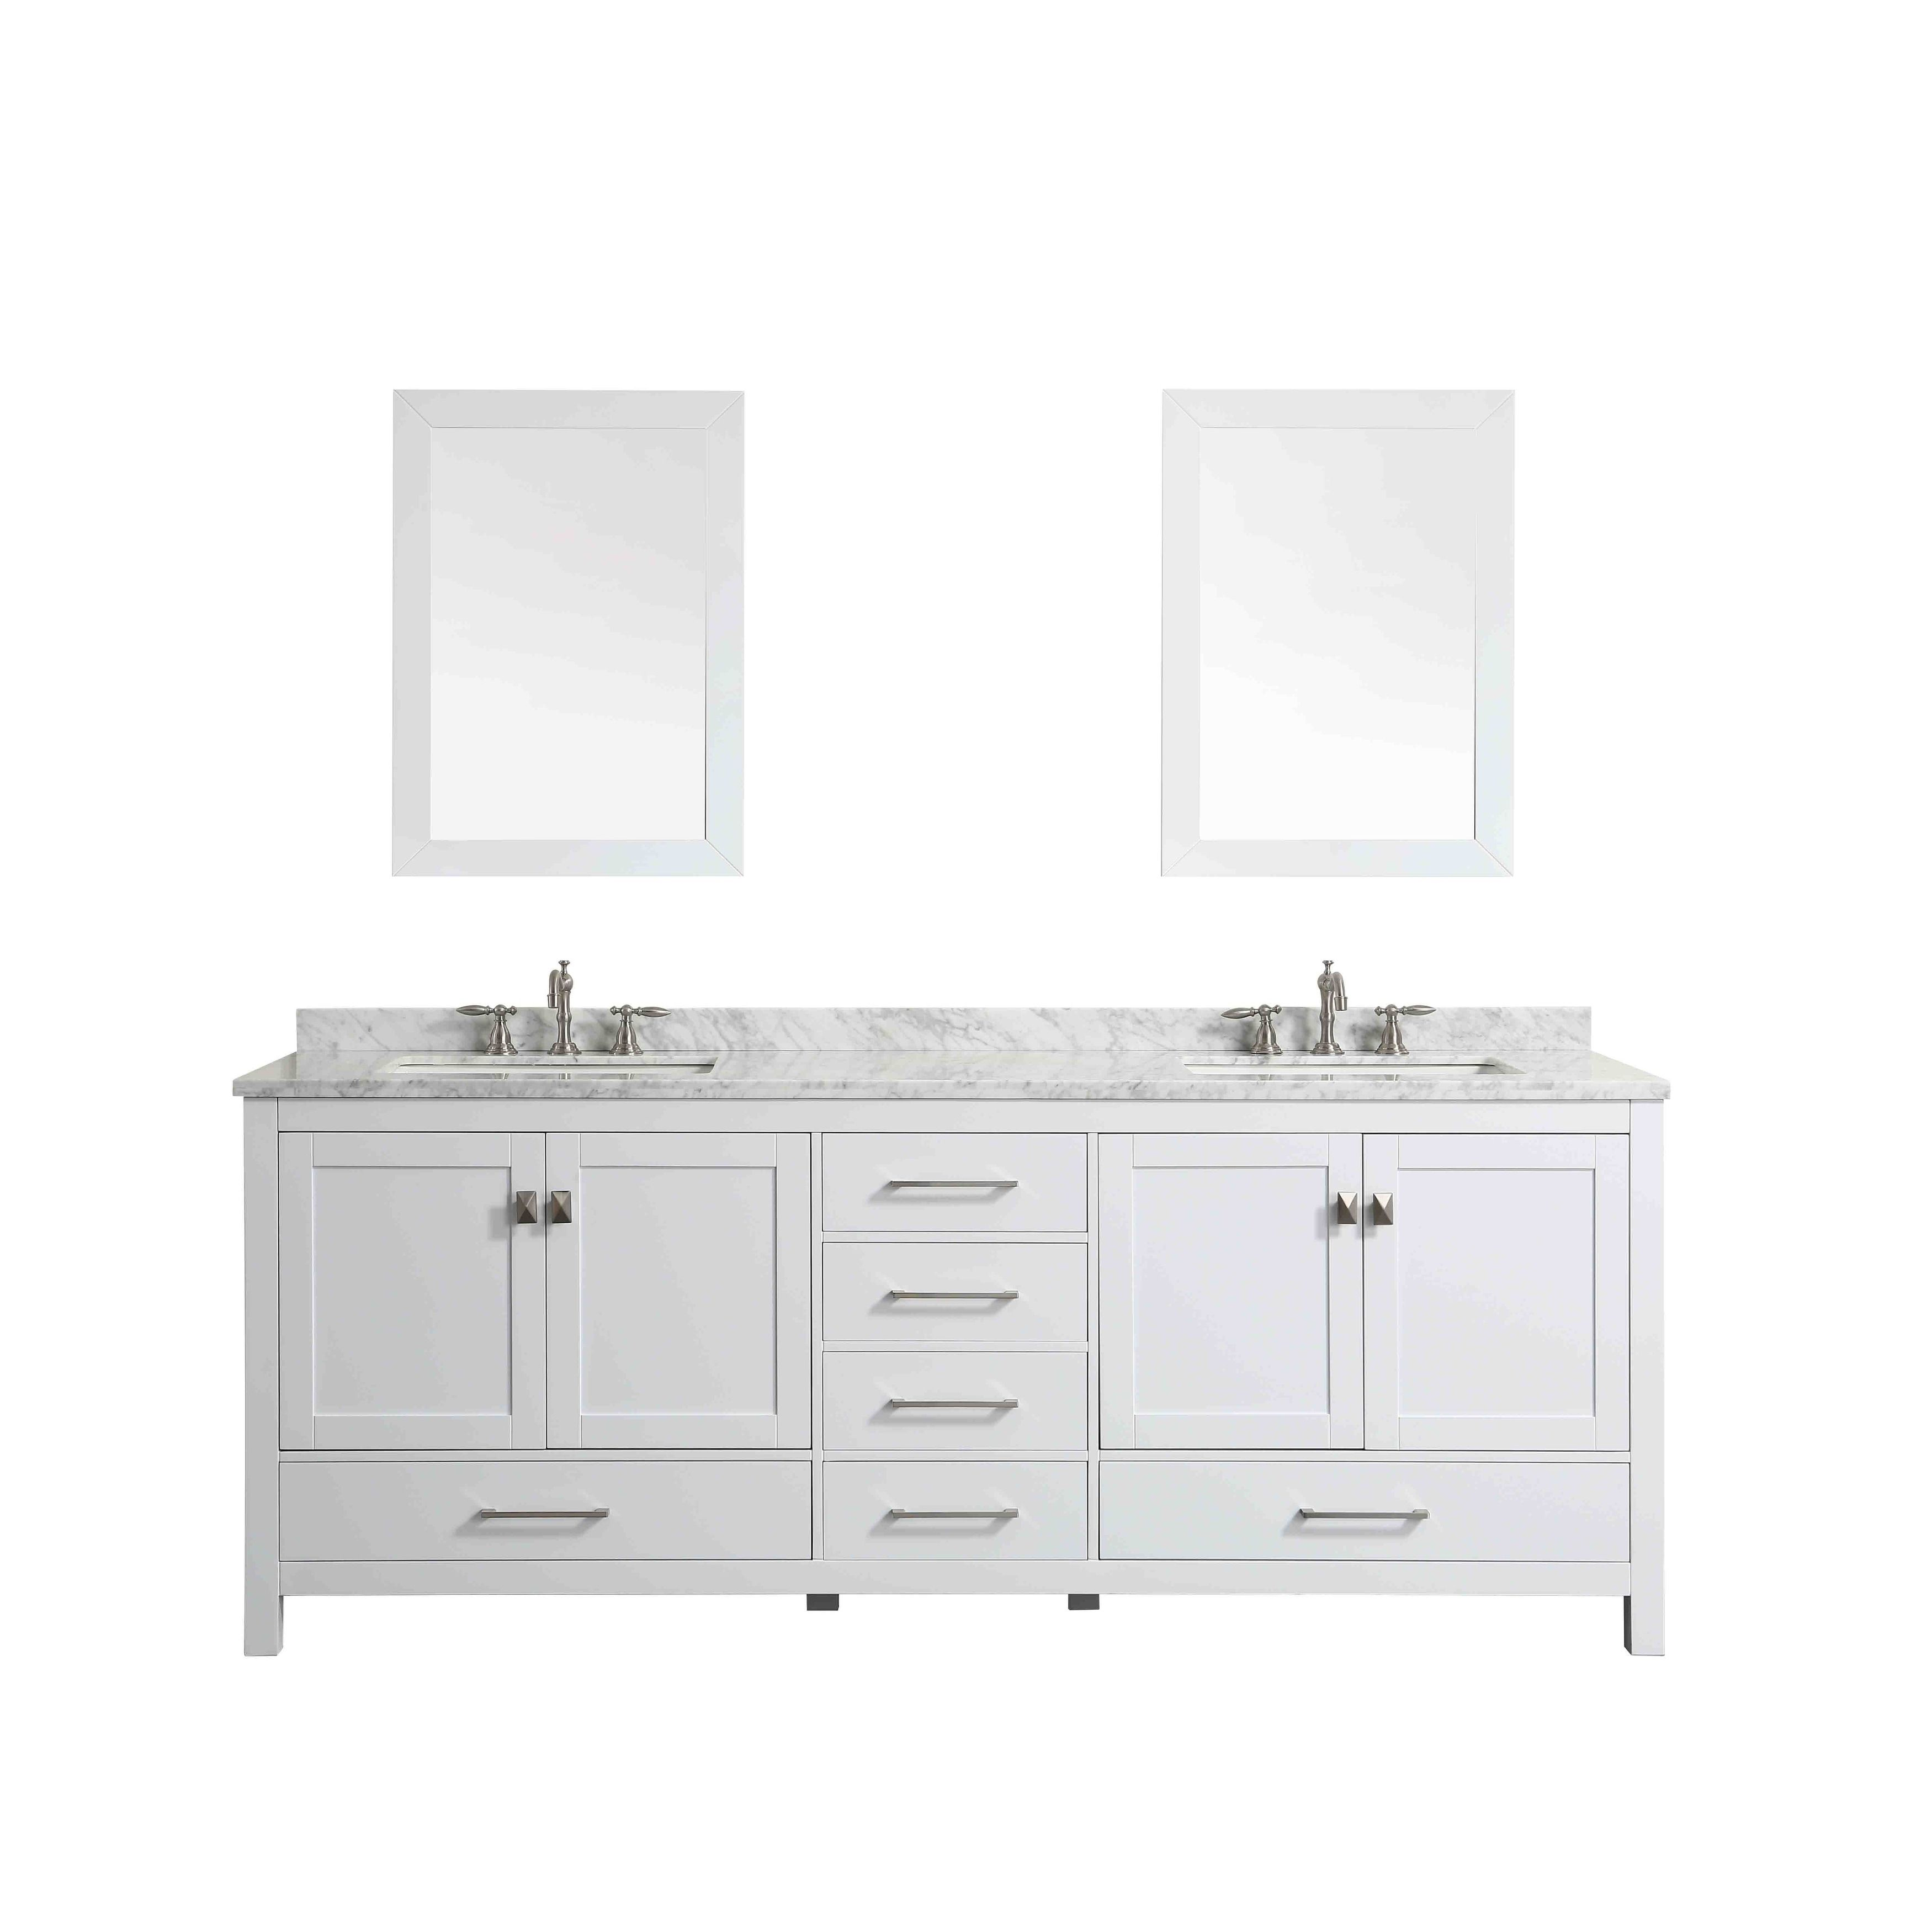 bathroom countertop quartz toga vanities in vanity products dsc taiya broadway inch white with